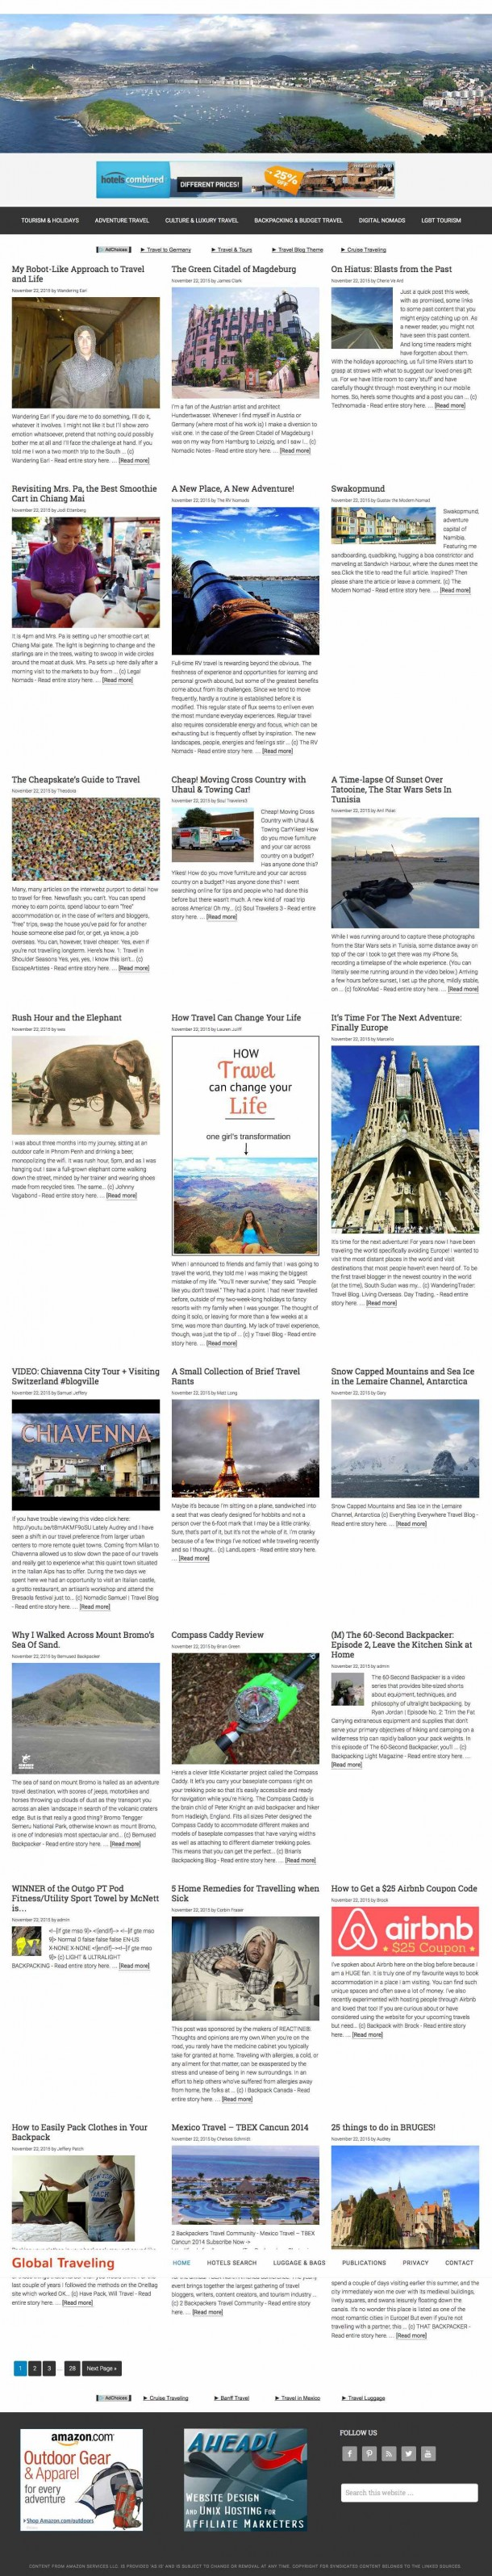 World_Traveling_The_best_holiday_destinations_and_travel_ideas!